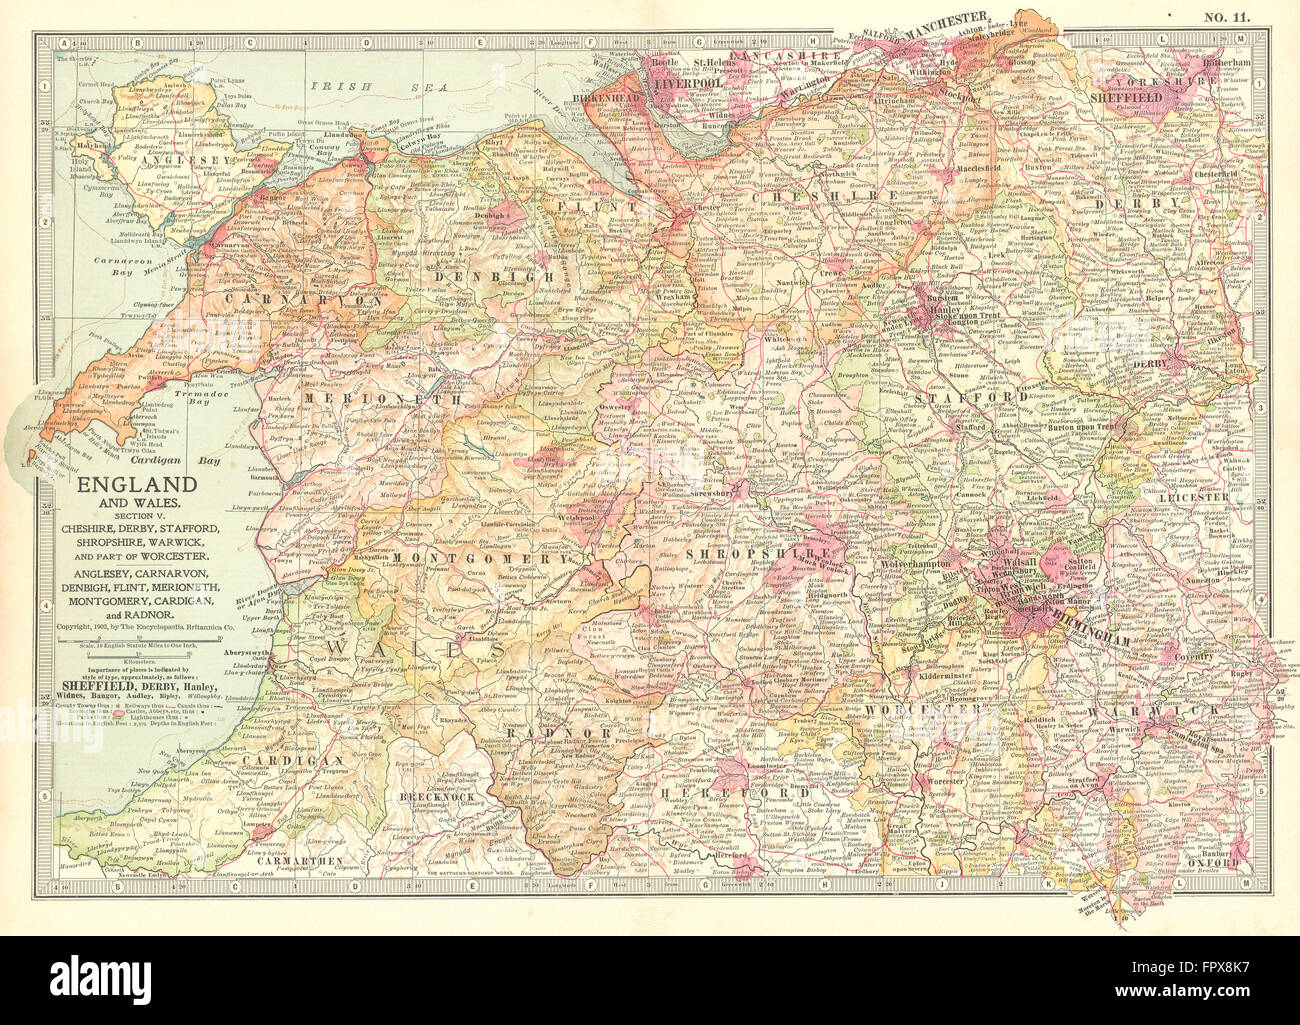 Map Of North England Uk.Uk West Midlands England North Wales 1903 Antique Map Stock